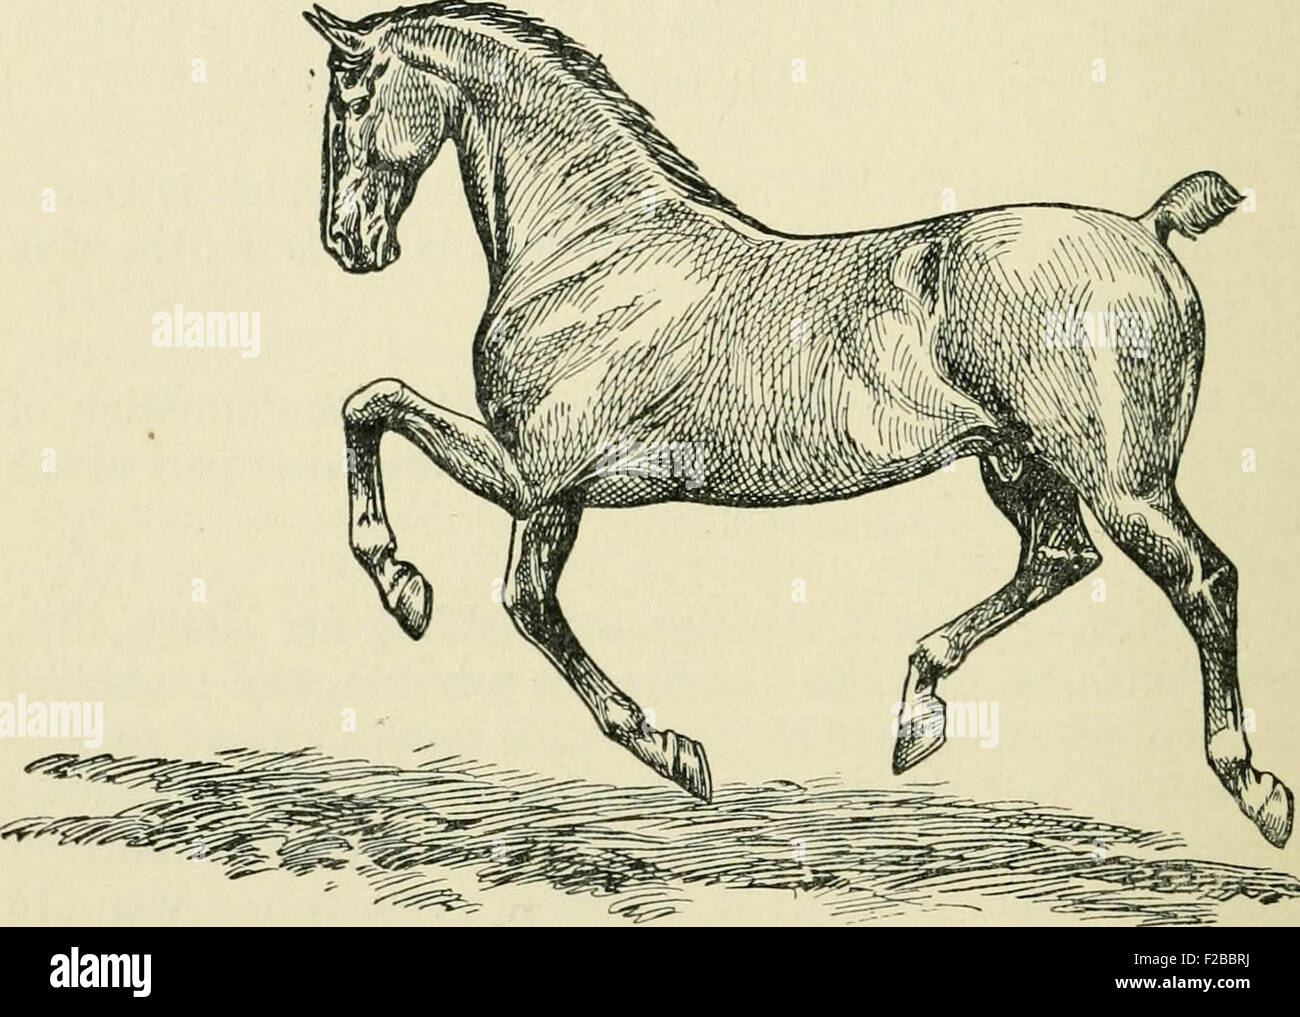 Horse Anatomy Drawing Stock Photos & Horse Anatomy Drawing Stock ...